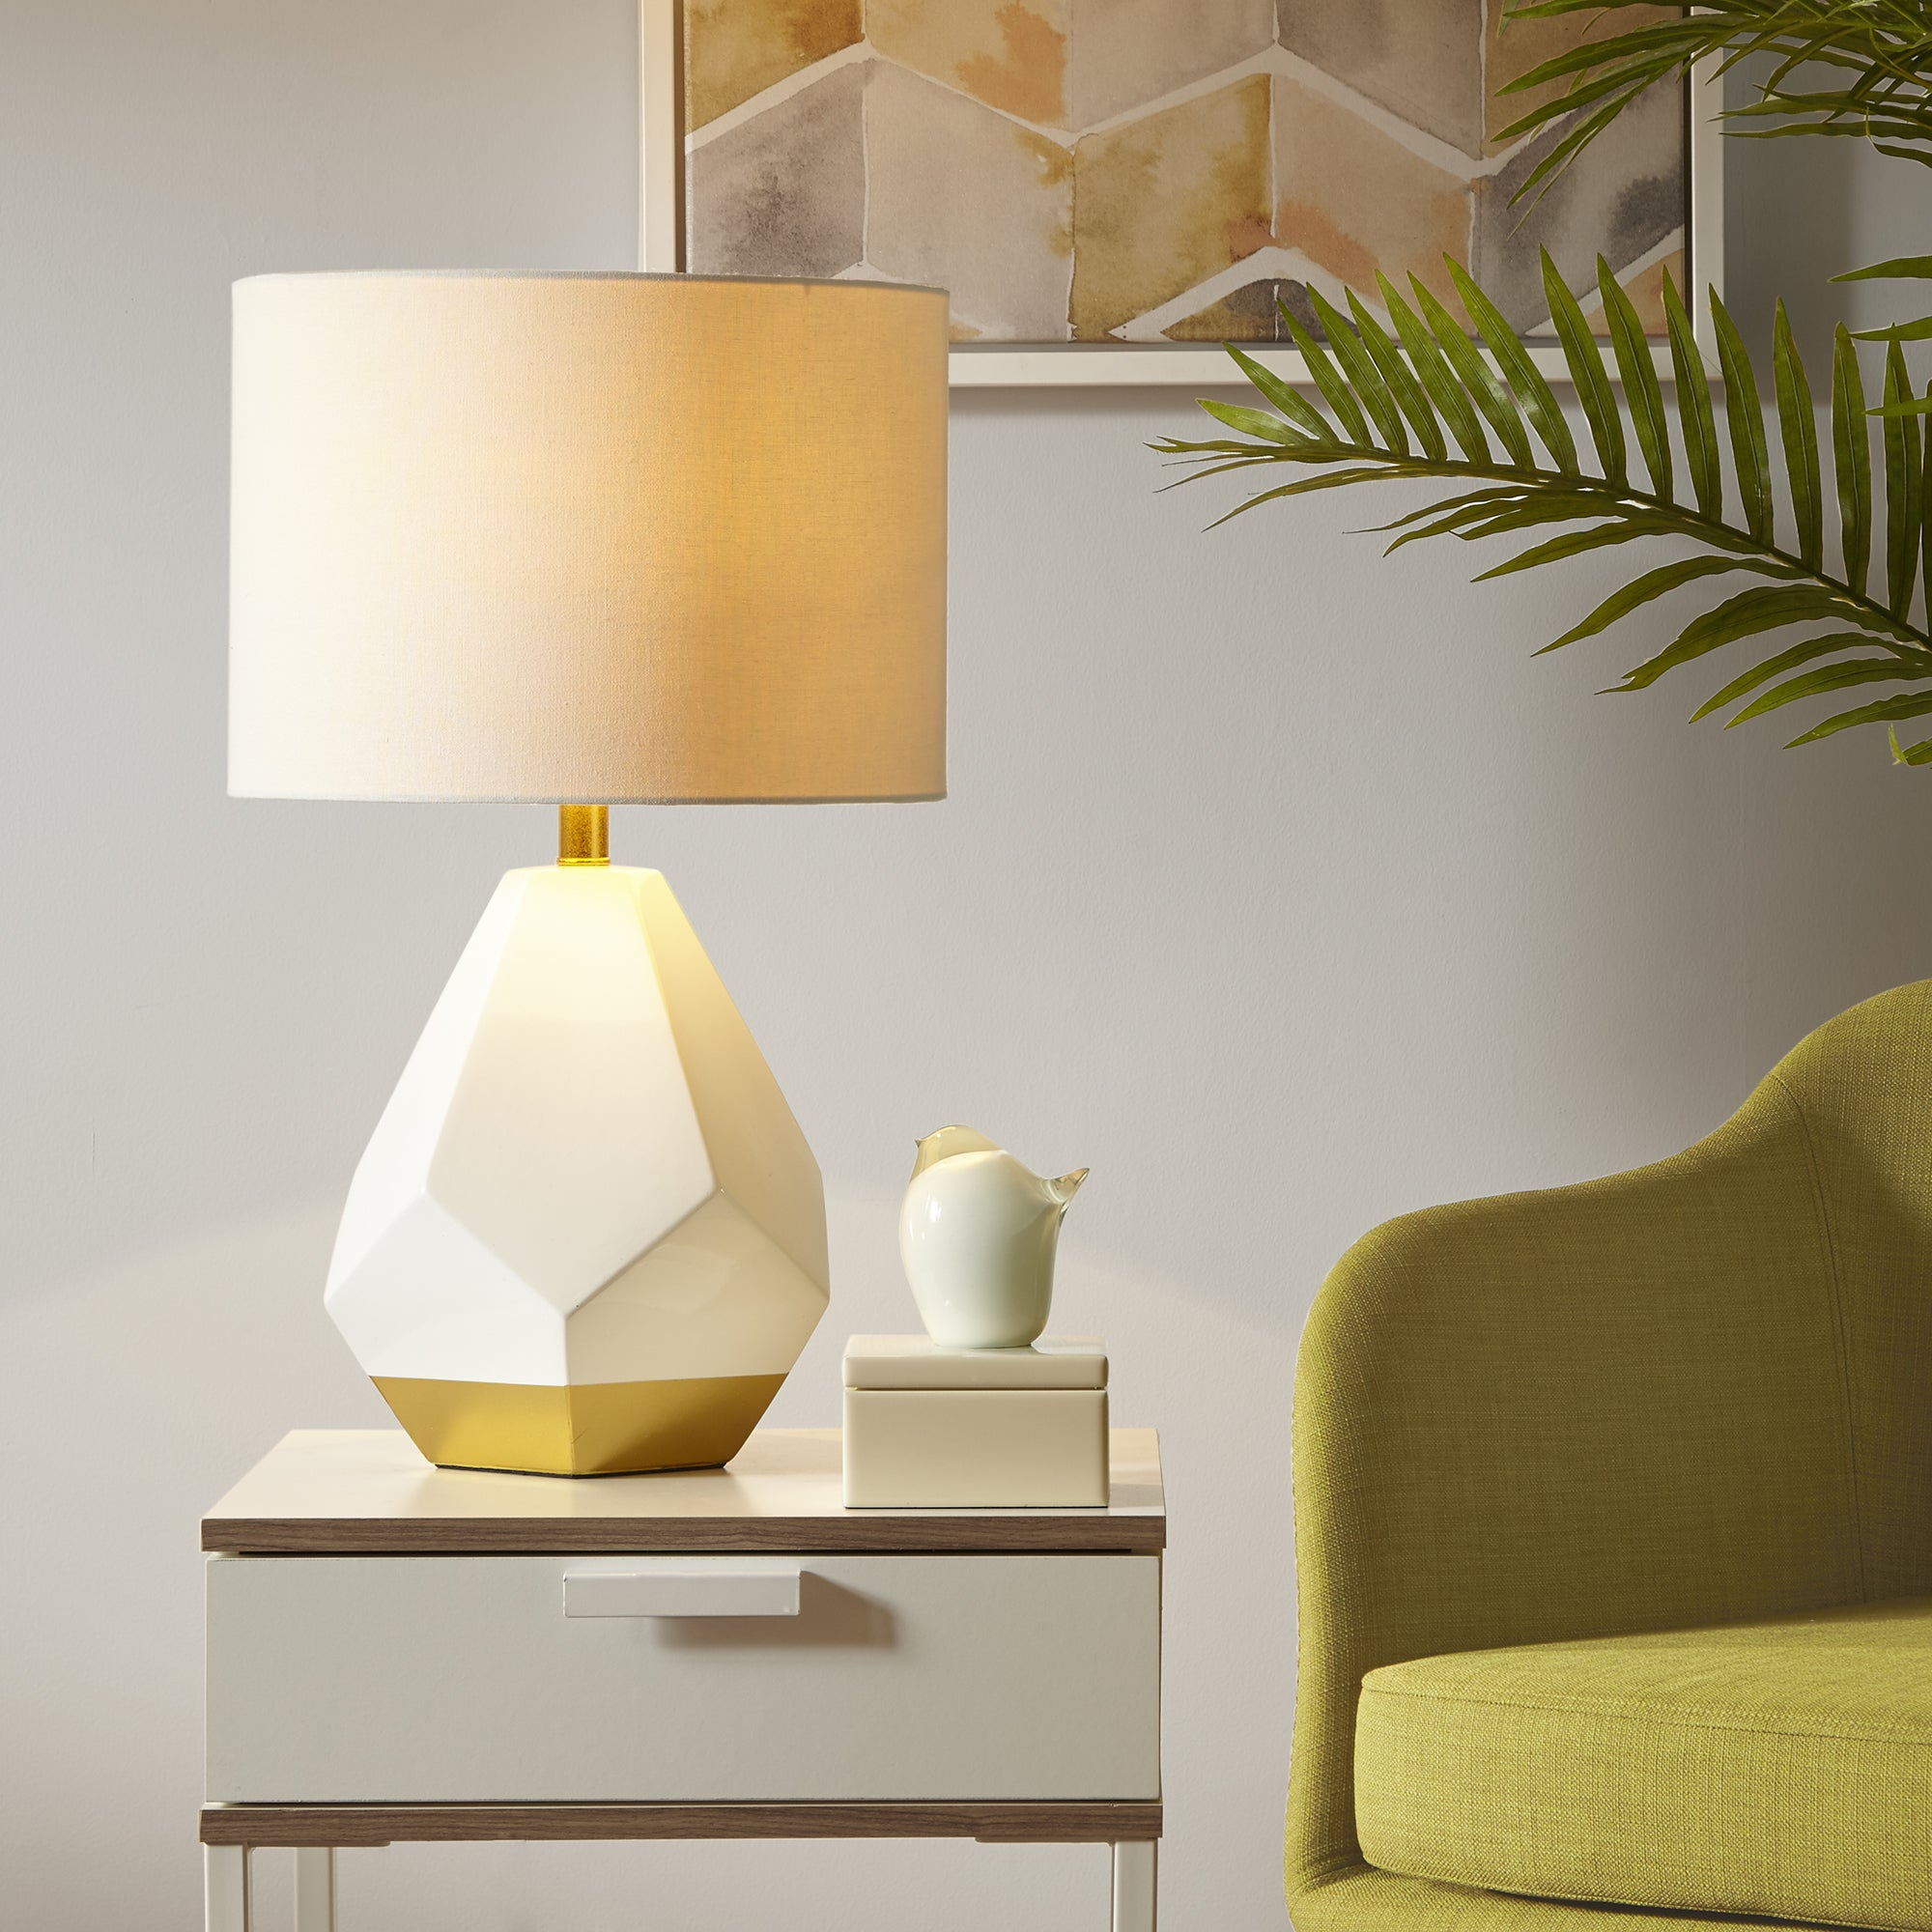 products r newformsdesign lamps en kartell gold lamp white bourgie table and